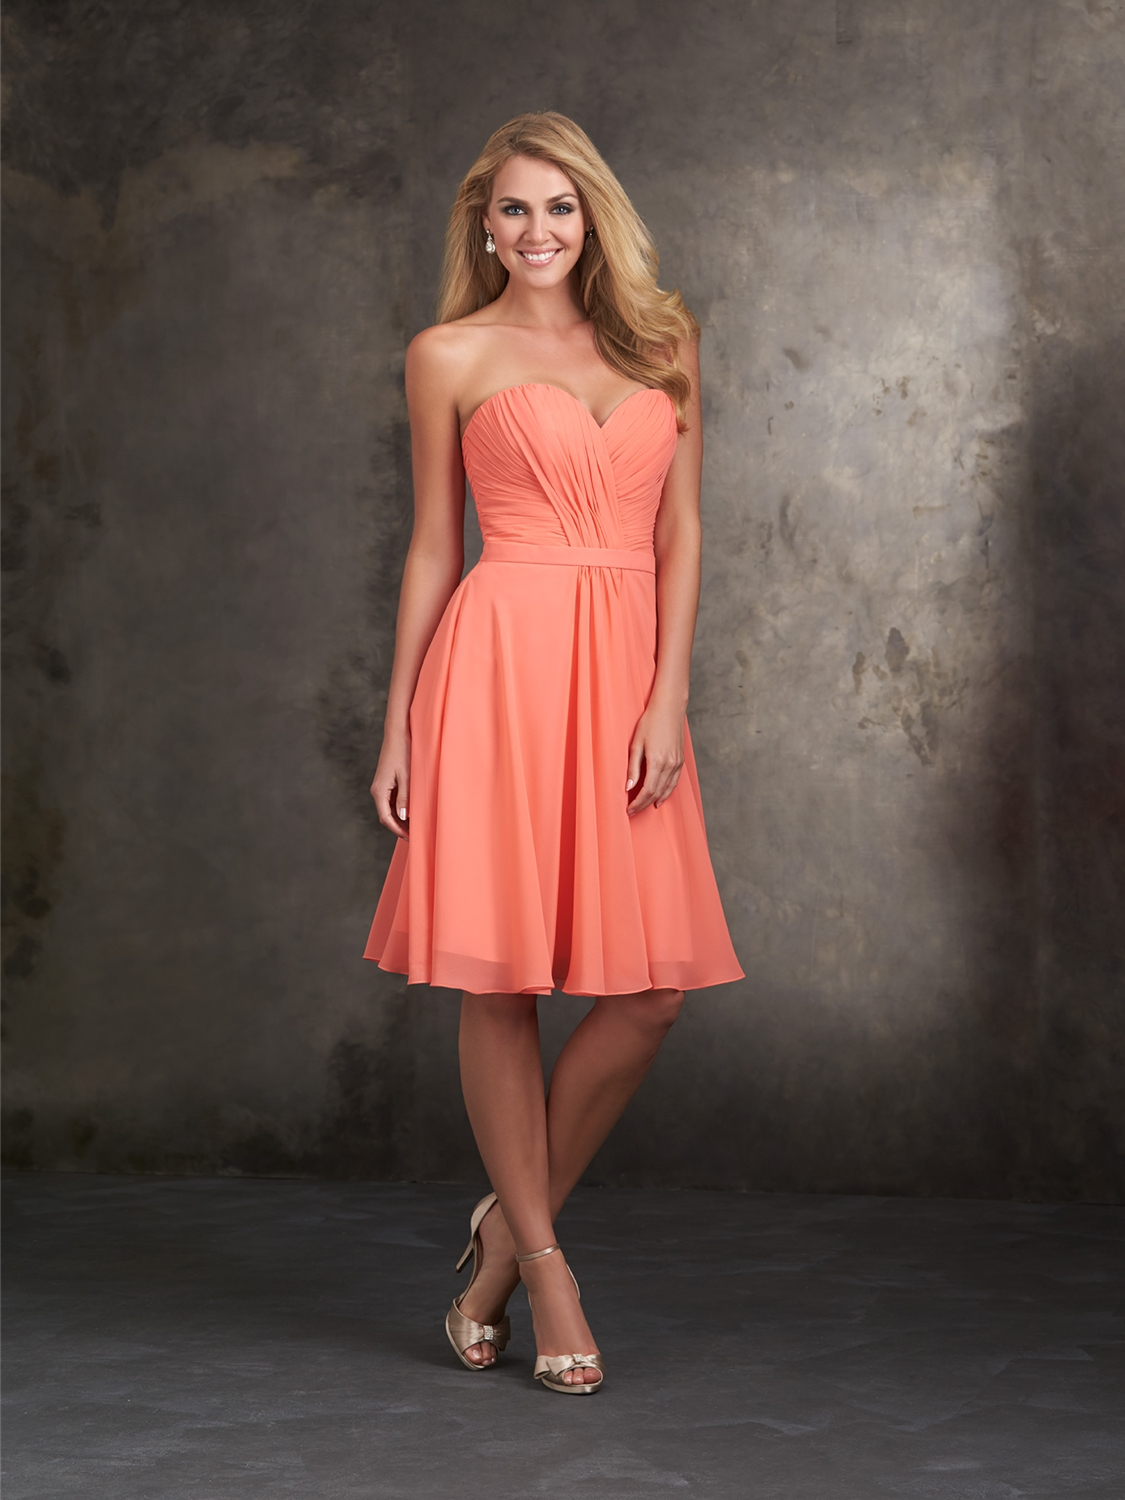 Allure bridesmaids bridesmaid dress style 1414 house of brides select color ombrellifo Images